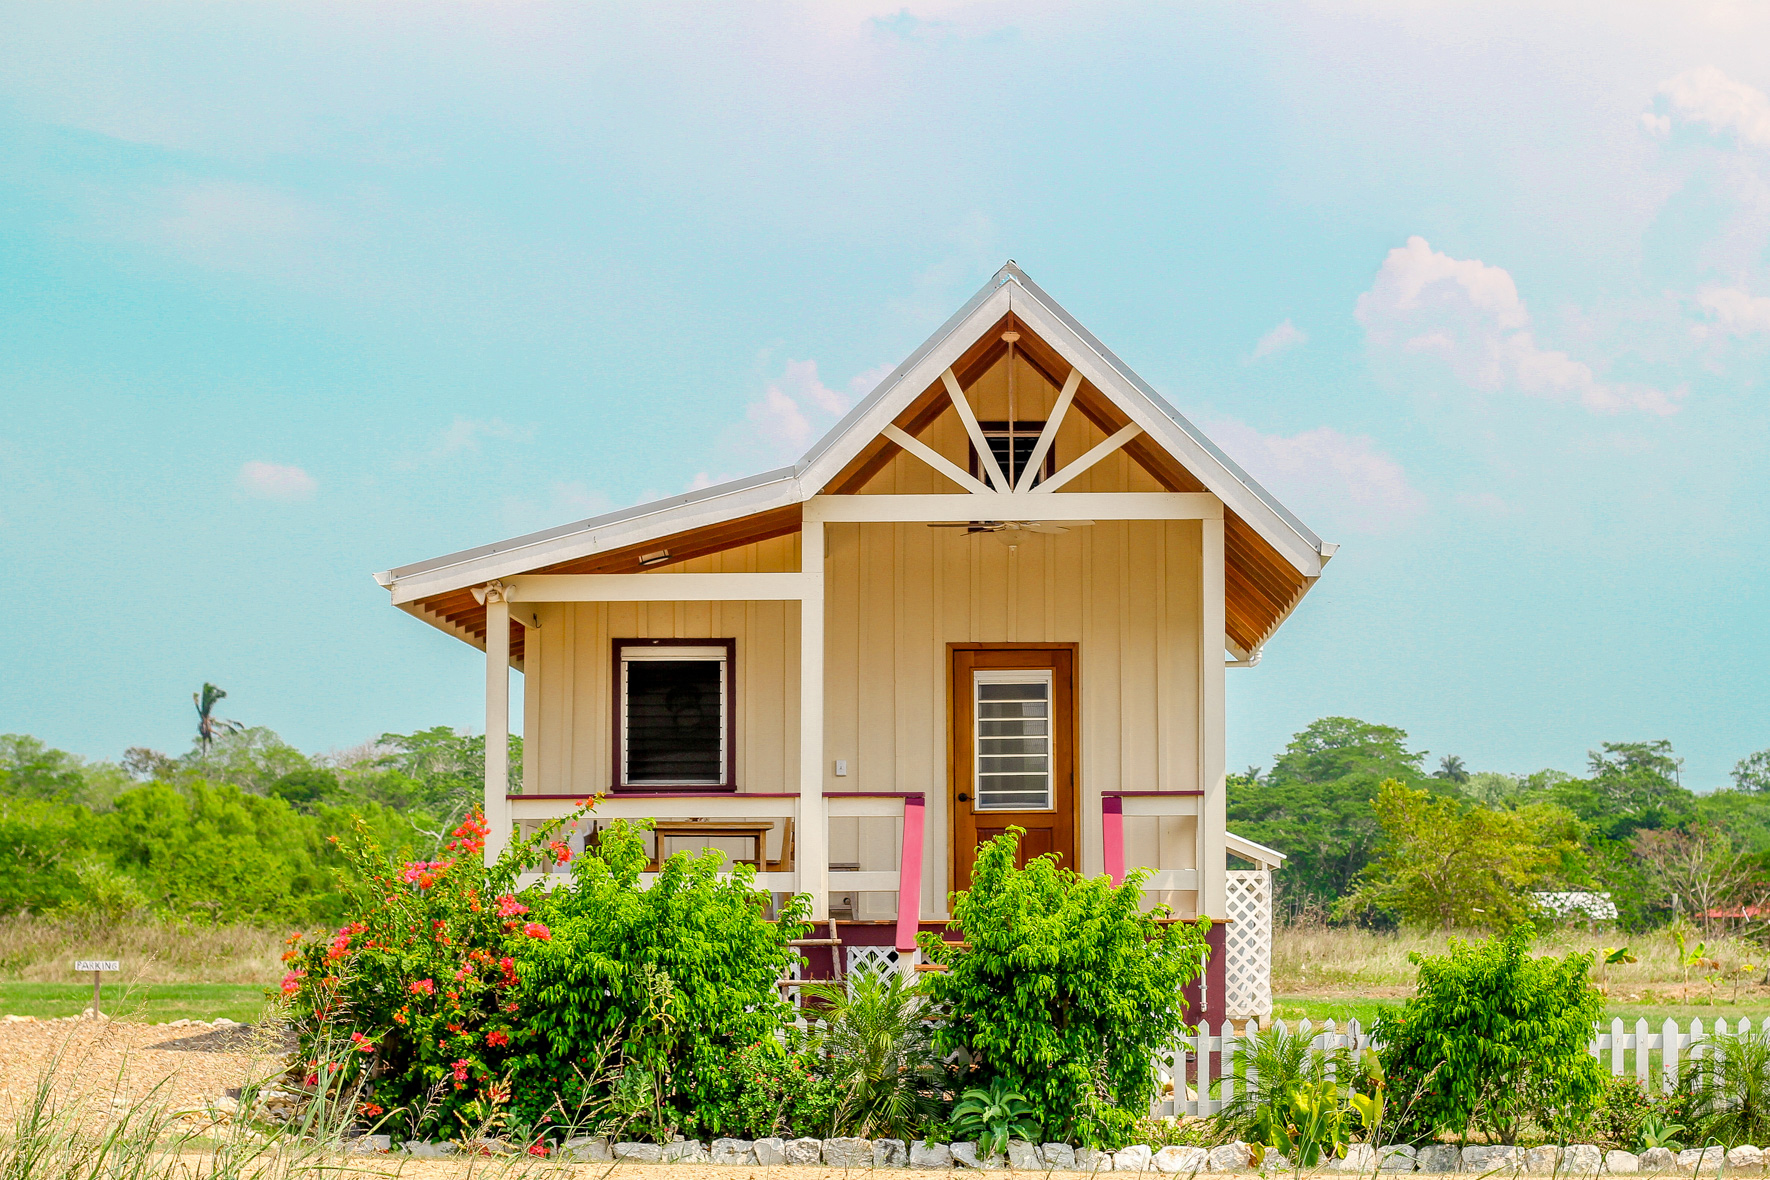 Where to live in Belize